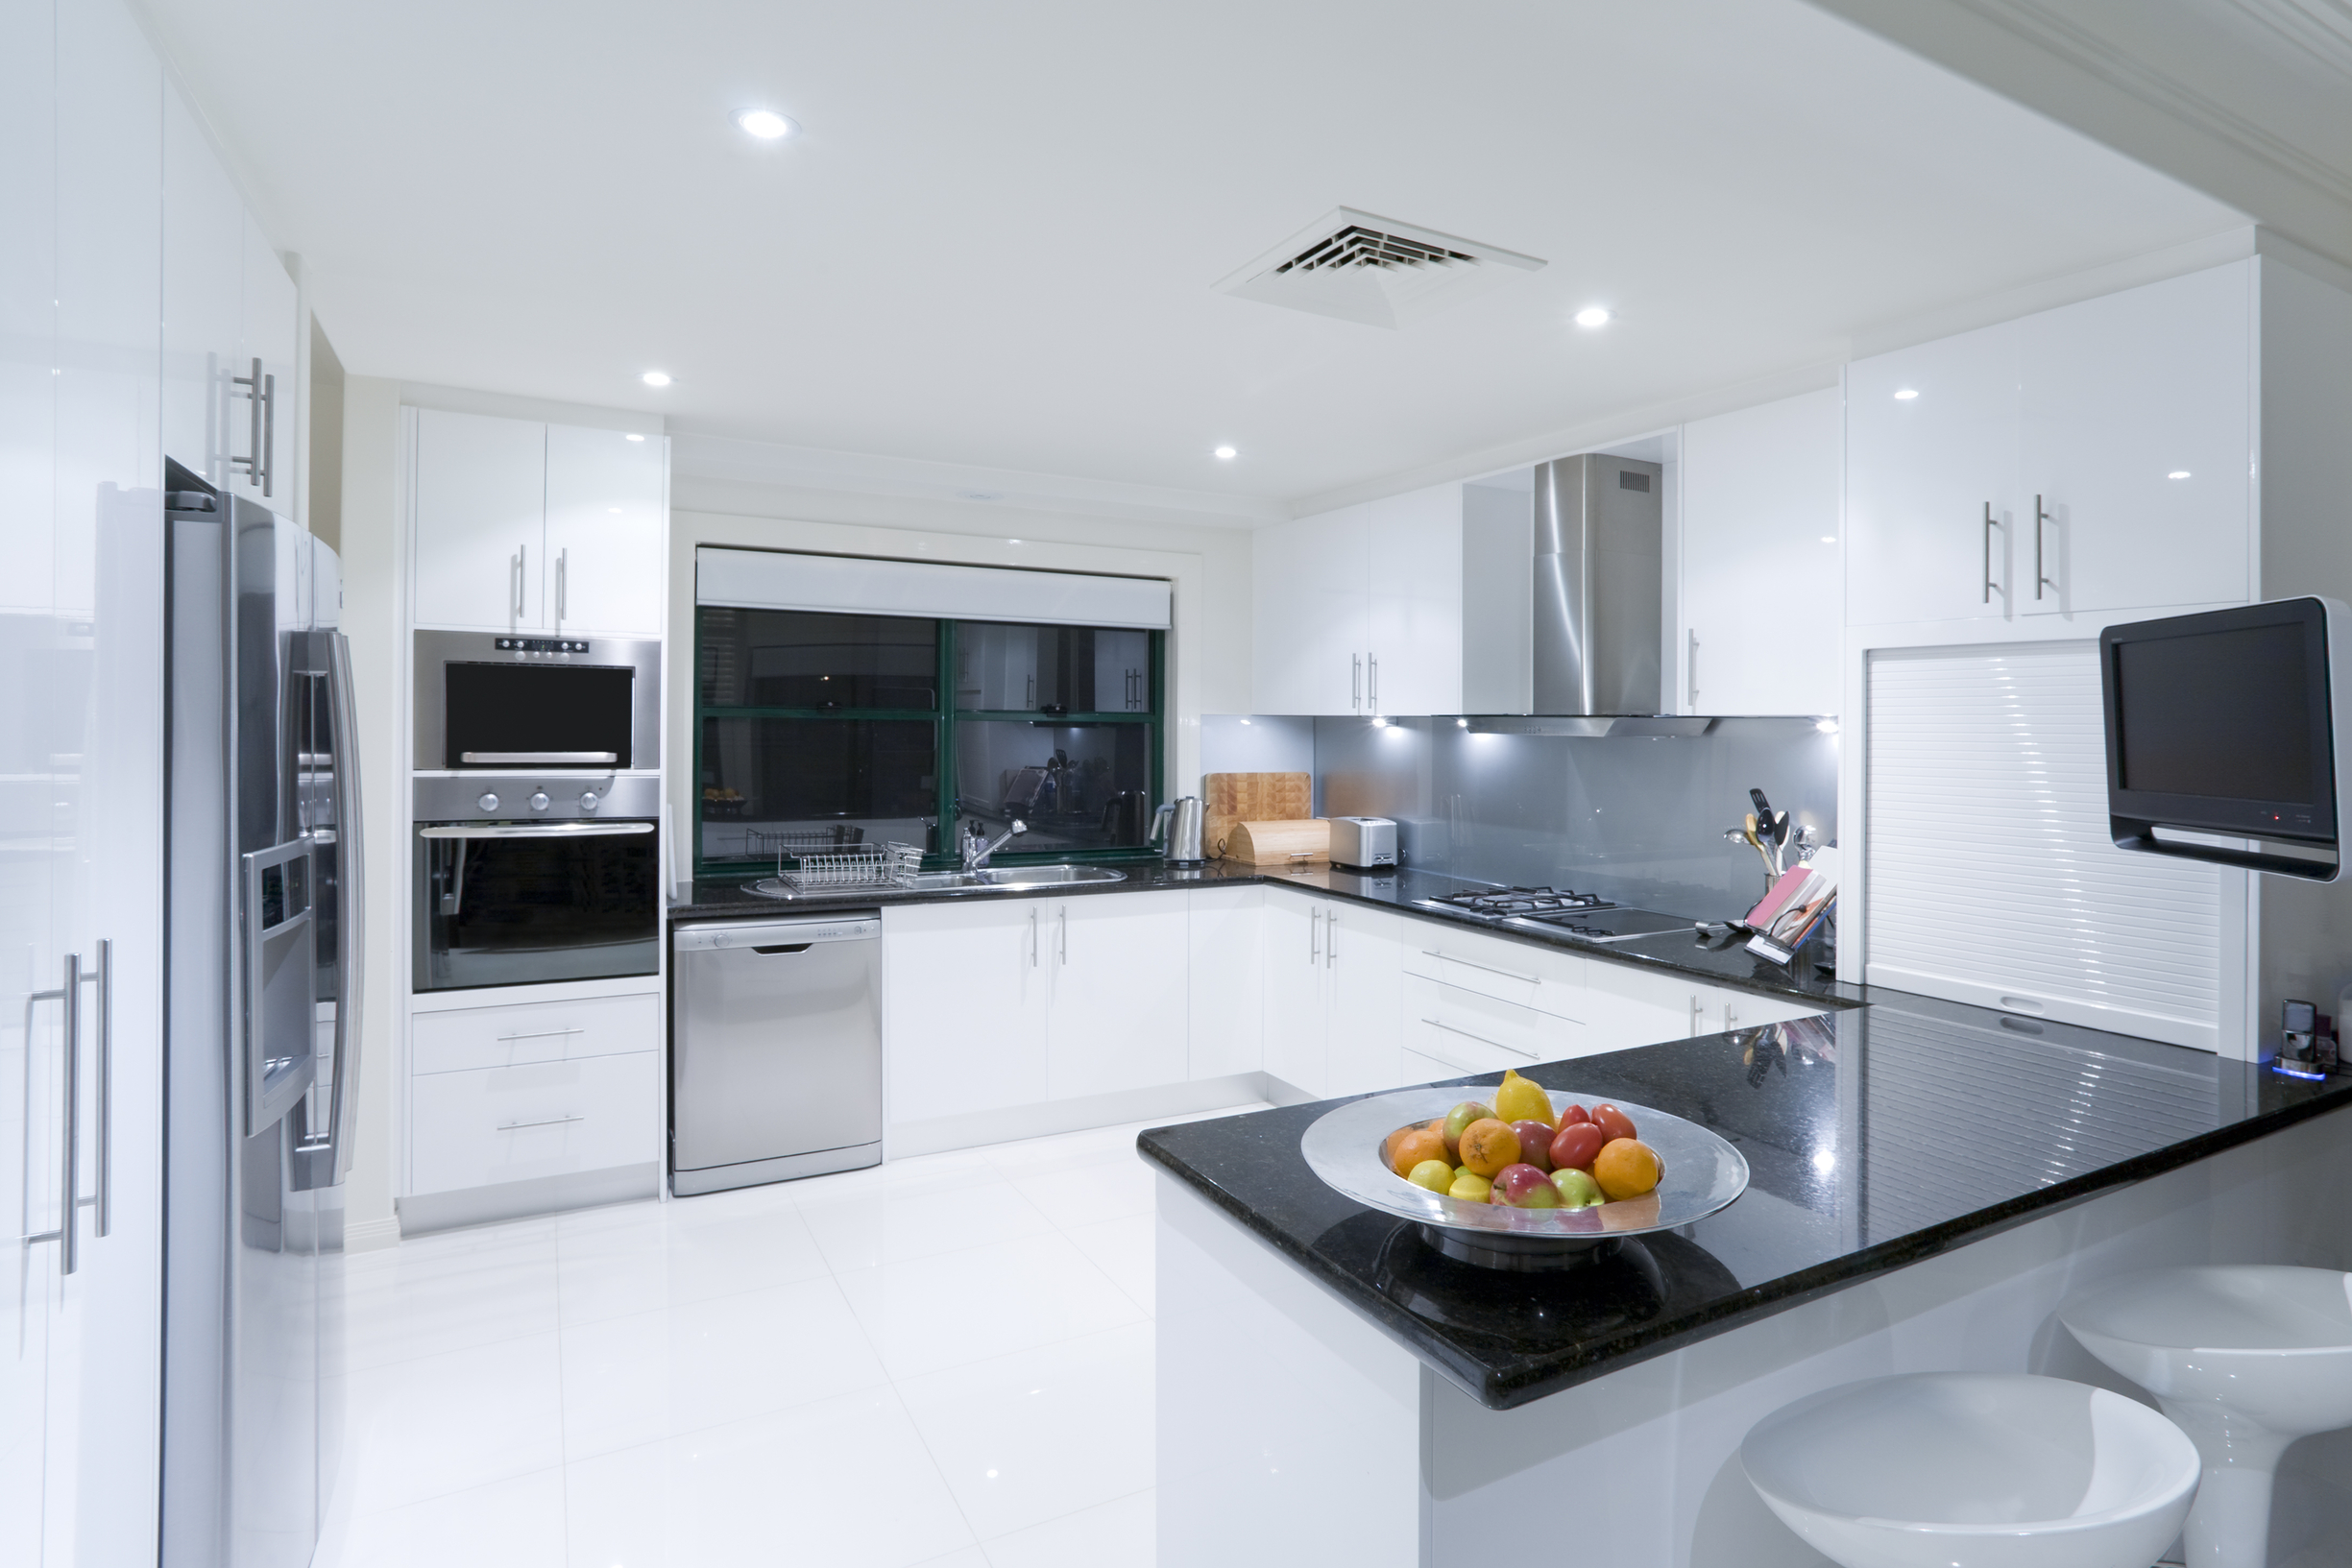 Kitchens Renovations Kitchen Renovations Adelaide Custom Kitchens Building Custom